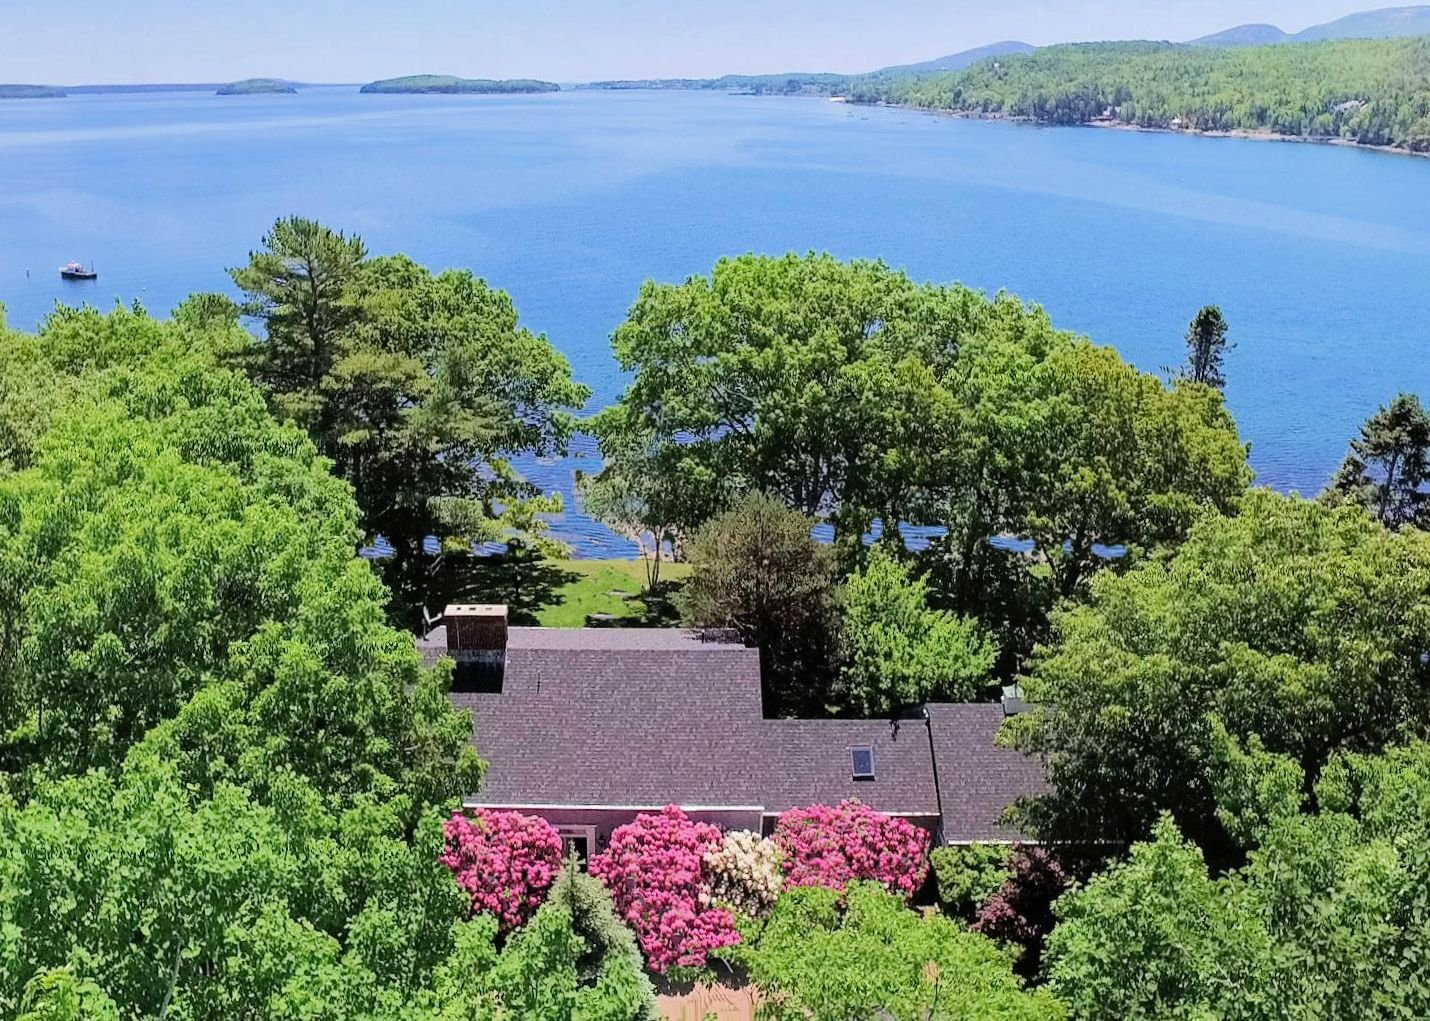 View over the Oceansedge property to Hulls Cove, Bar Harbor Yacht Club and Gilded Age mansions on shoreline, Cadillac Mountain range, the Town's waterfront and boat basin, the Porcupine Islands, the North Atlantic beyond.